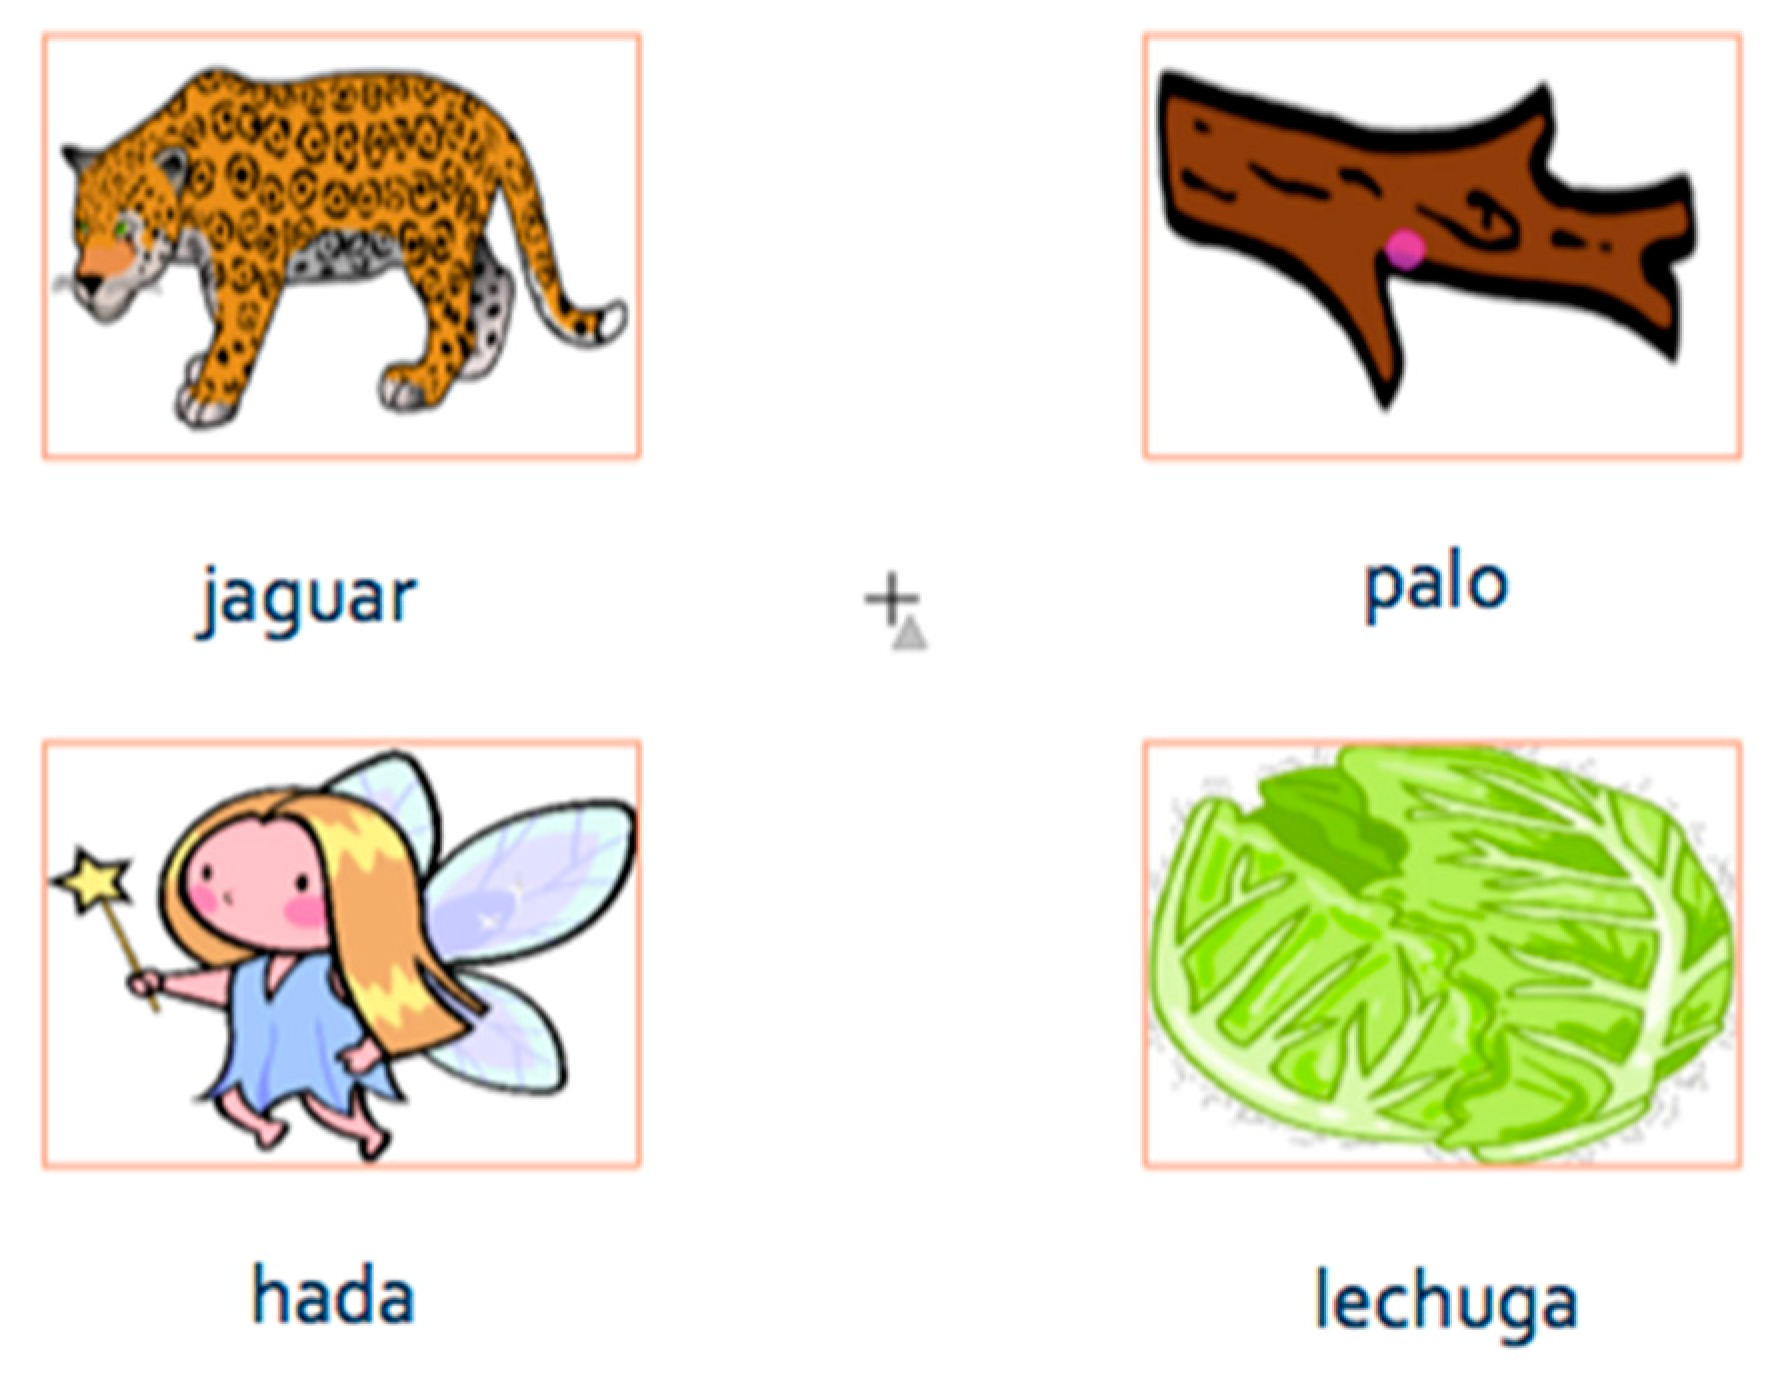 spanish orthography Spanish orthographic accent is an important part of leraning spanish language, this site will teach all rules about this topic with the most complete examples.